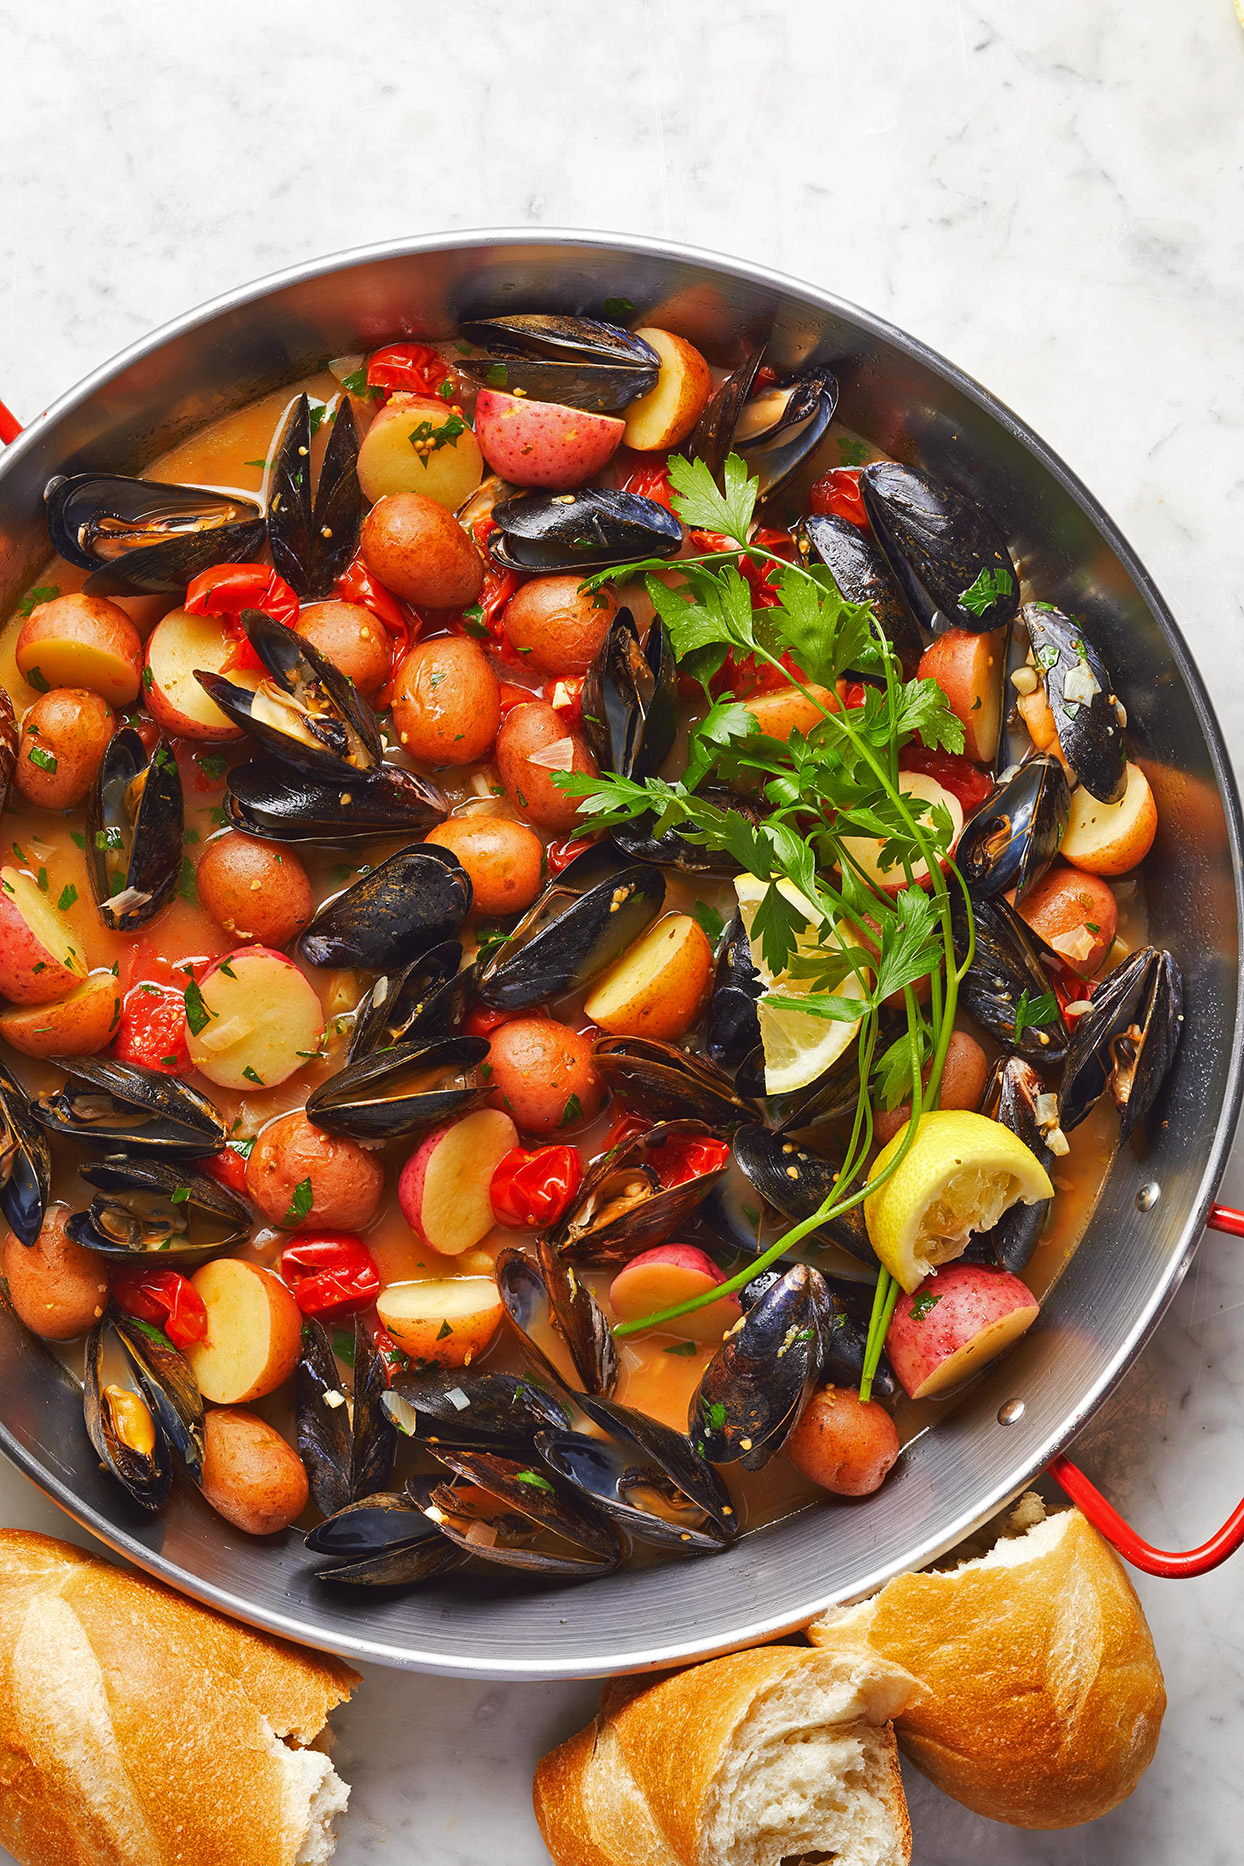 Lemony Mussels with Cherry Tomatoes and Potatoes in pan